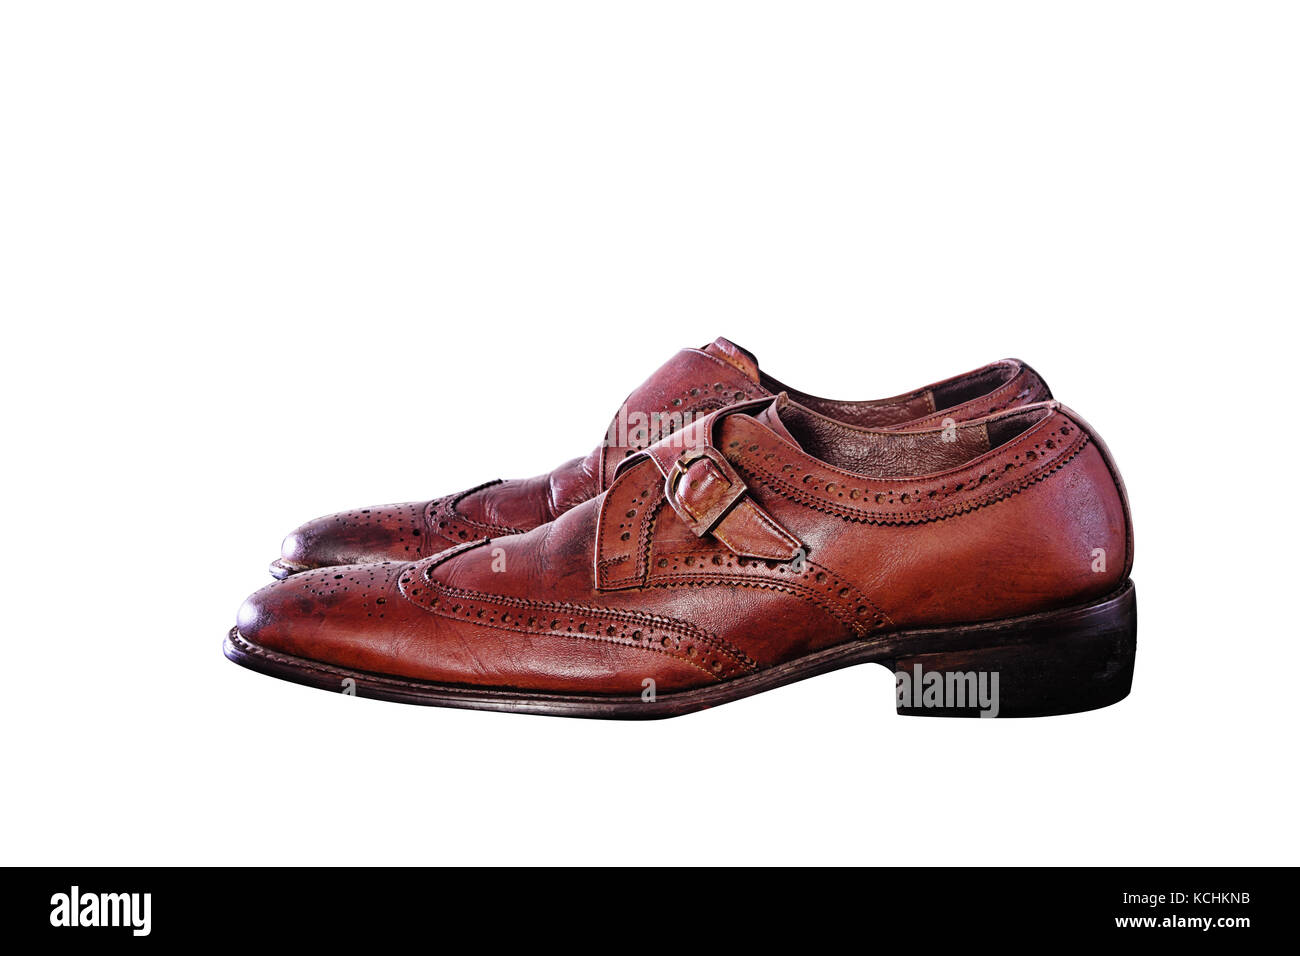 Closeup of Second hand Fashionable Male Classic Leather Shoes isolate on white background Stock Photo